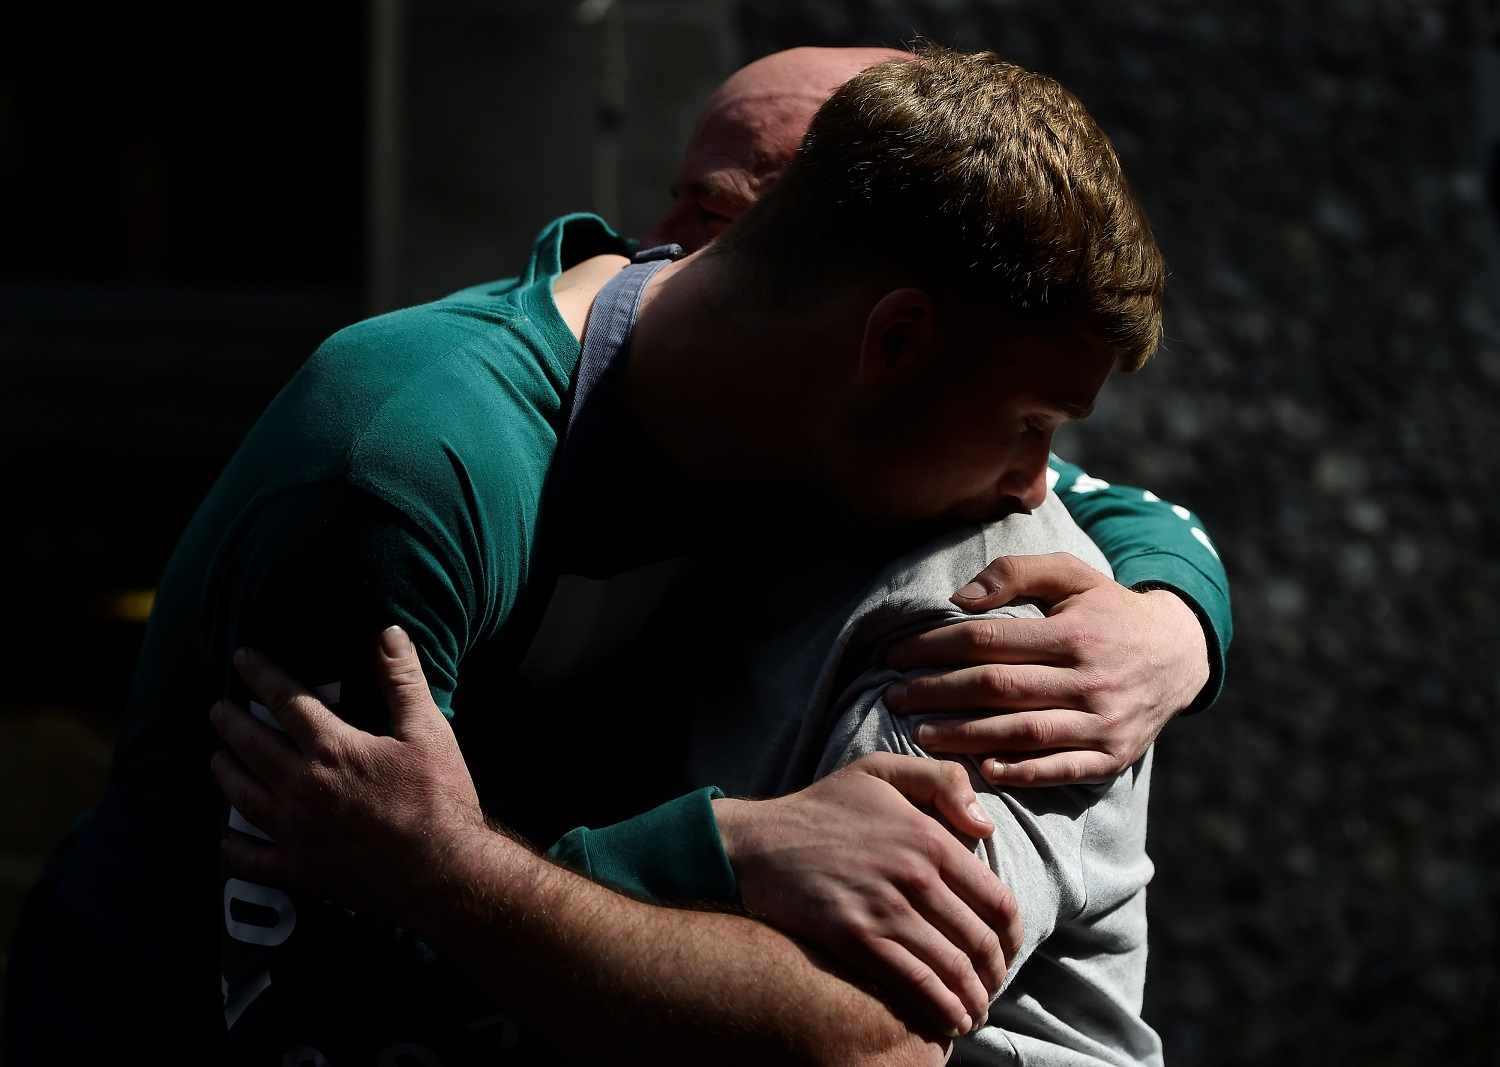 People embrace in Borough Market, which officially re-opened today following the recent attack, in central London, Britain June 14, 2017. REUTERS/Hannah McKay